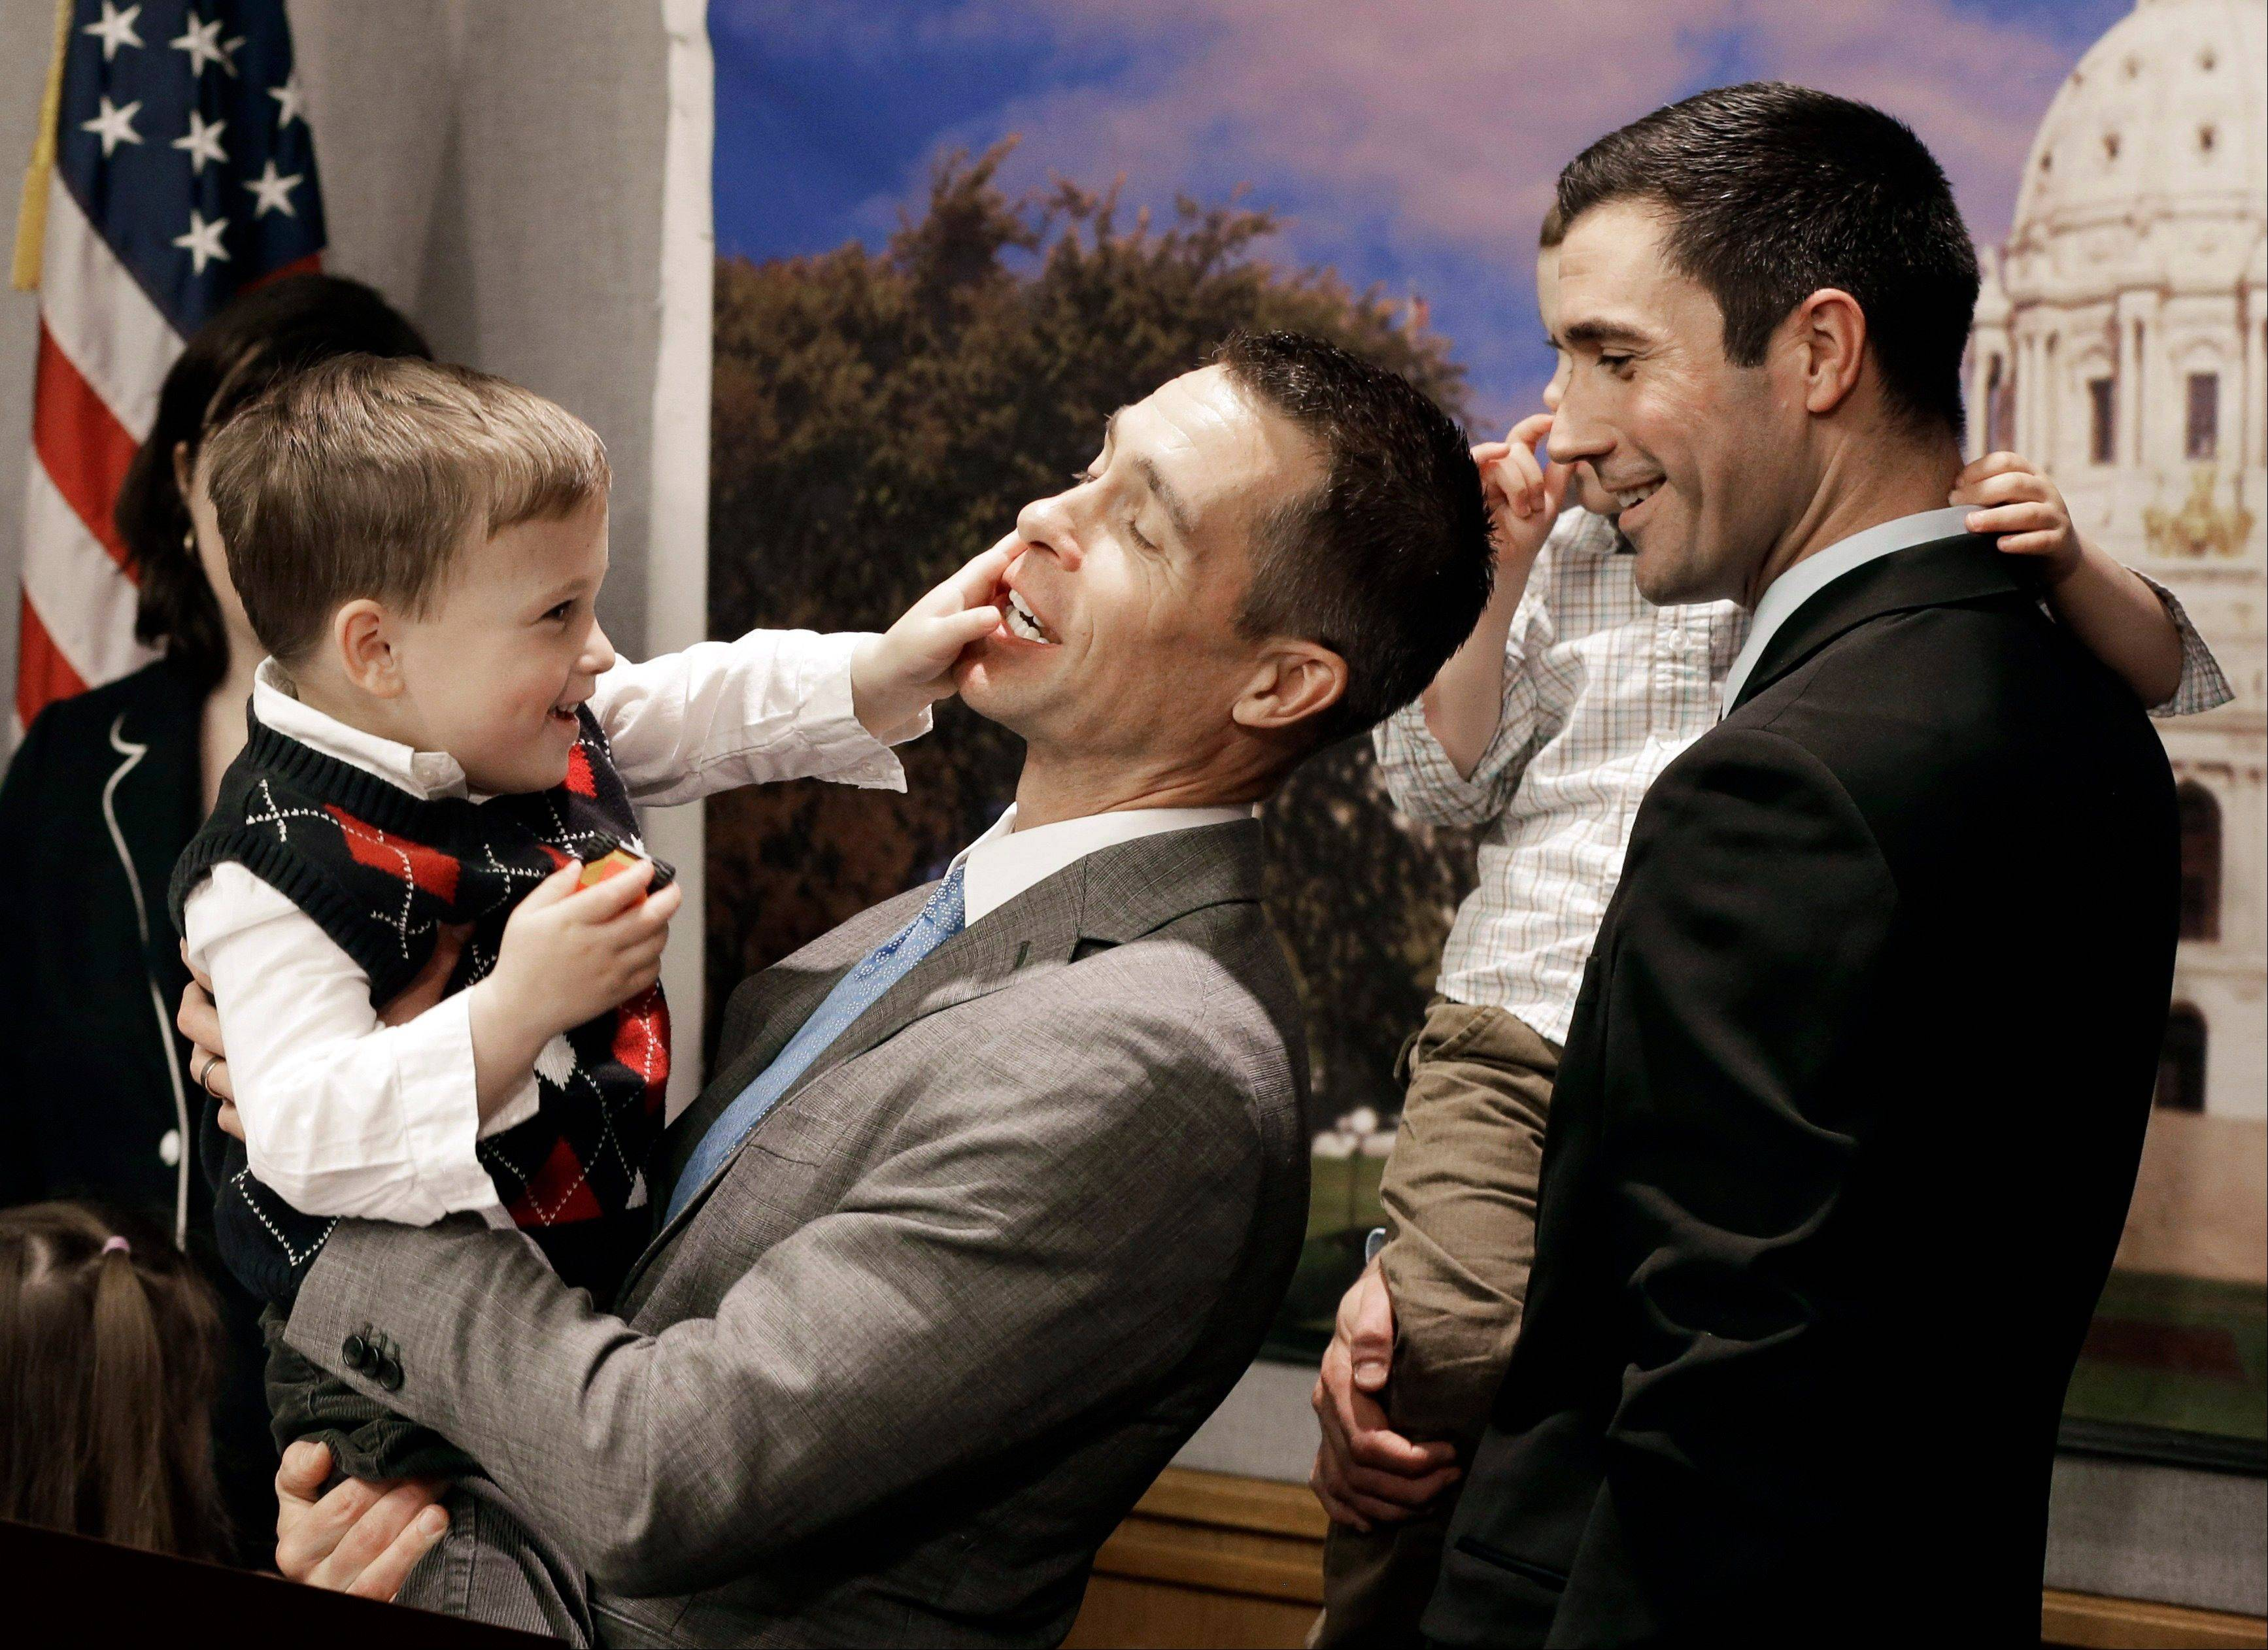 The American Academy of Pediatrics, the most influential U.S. pediatrician's group, has endorsed gay marriage, saying a stable relationship between parents regardless of sexual orientation contributes to a child's health and well-being.